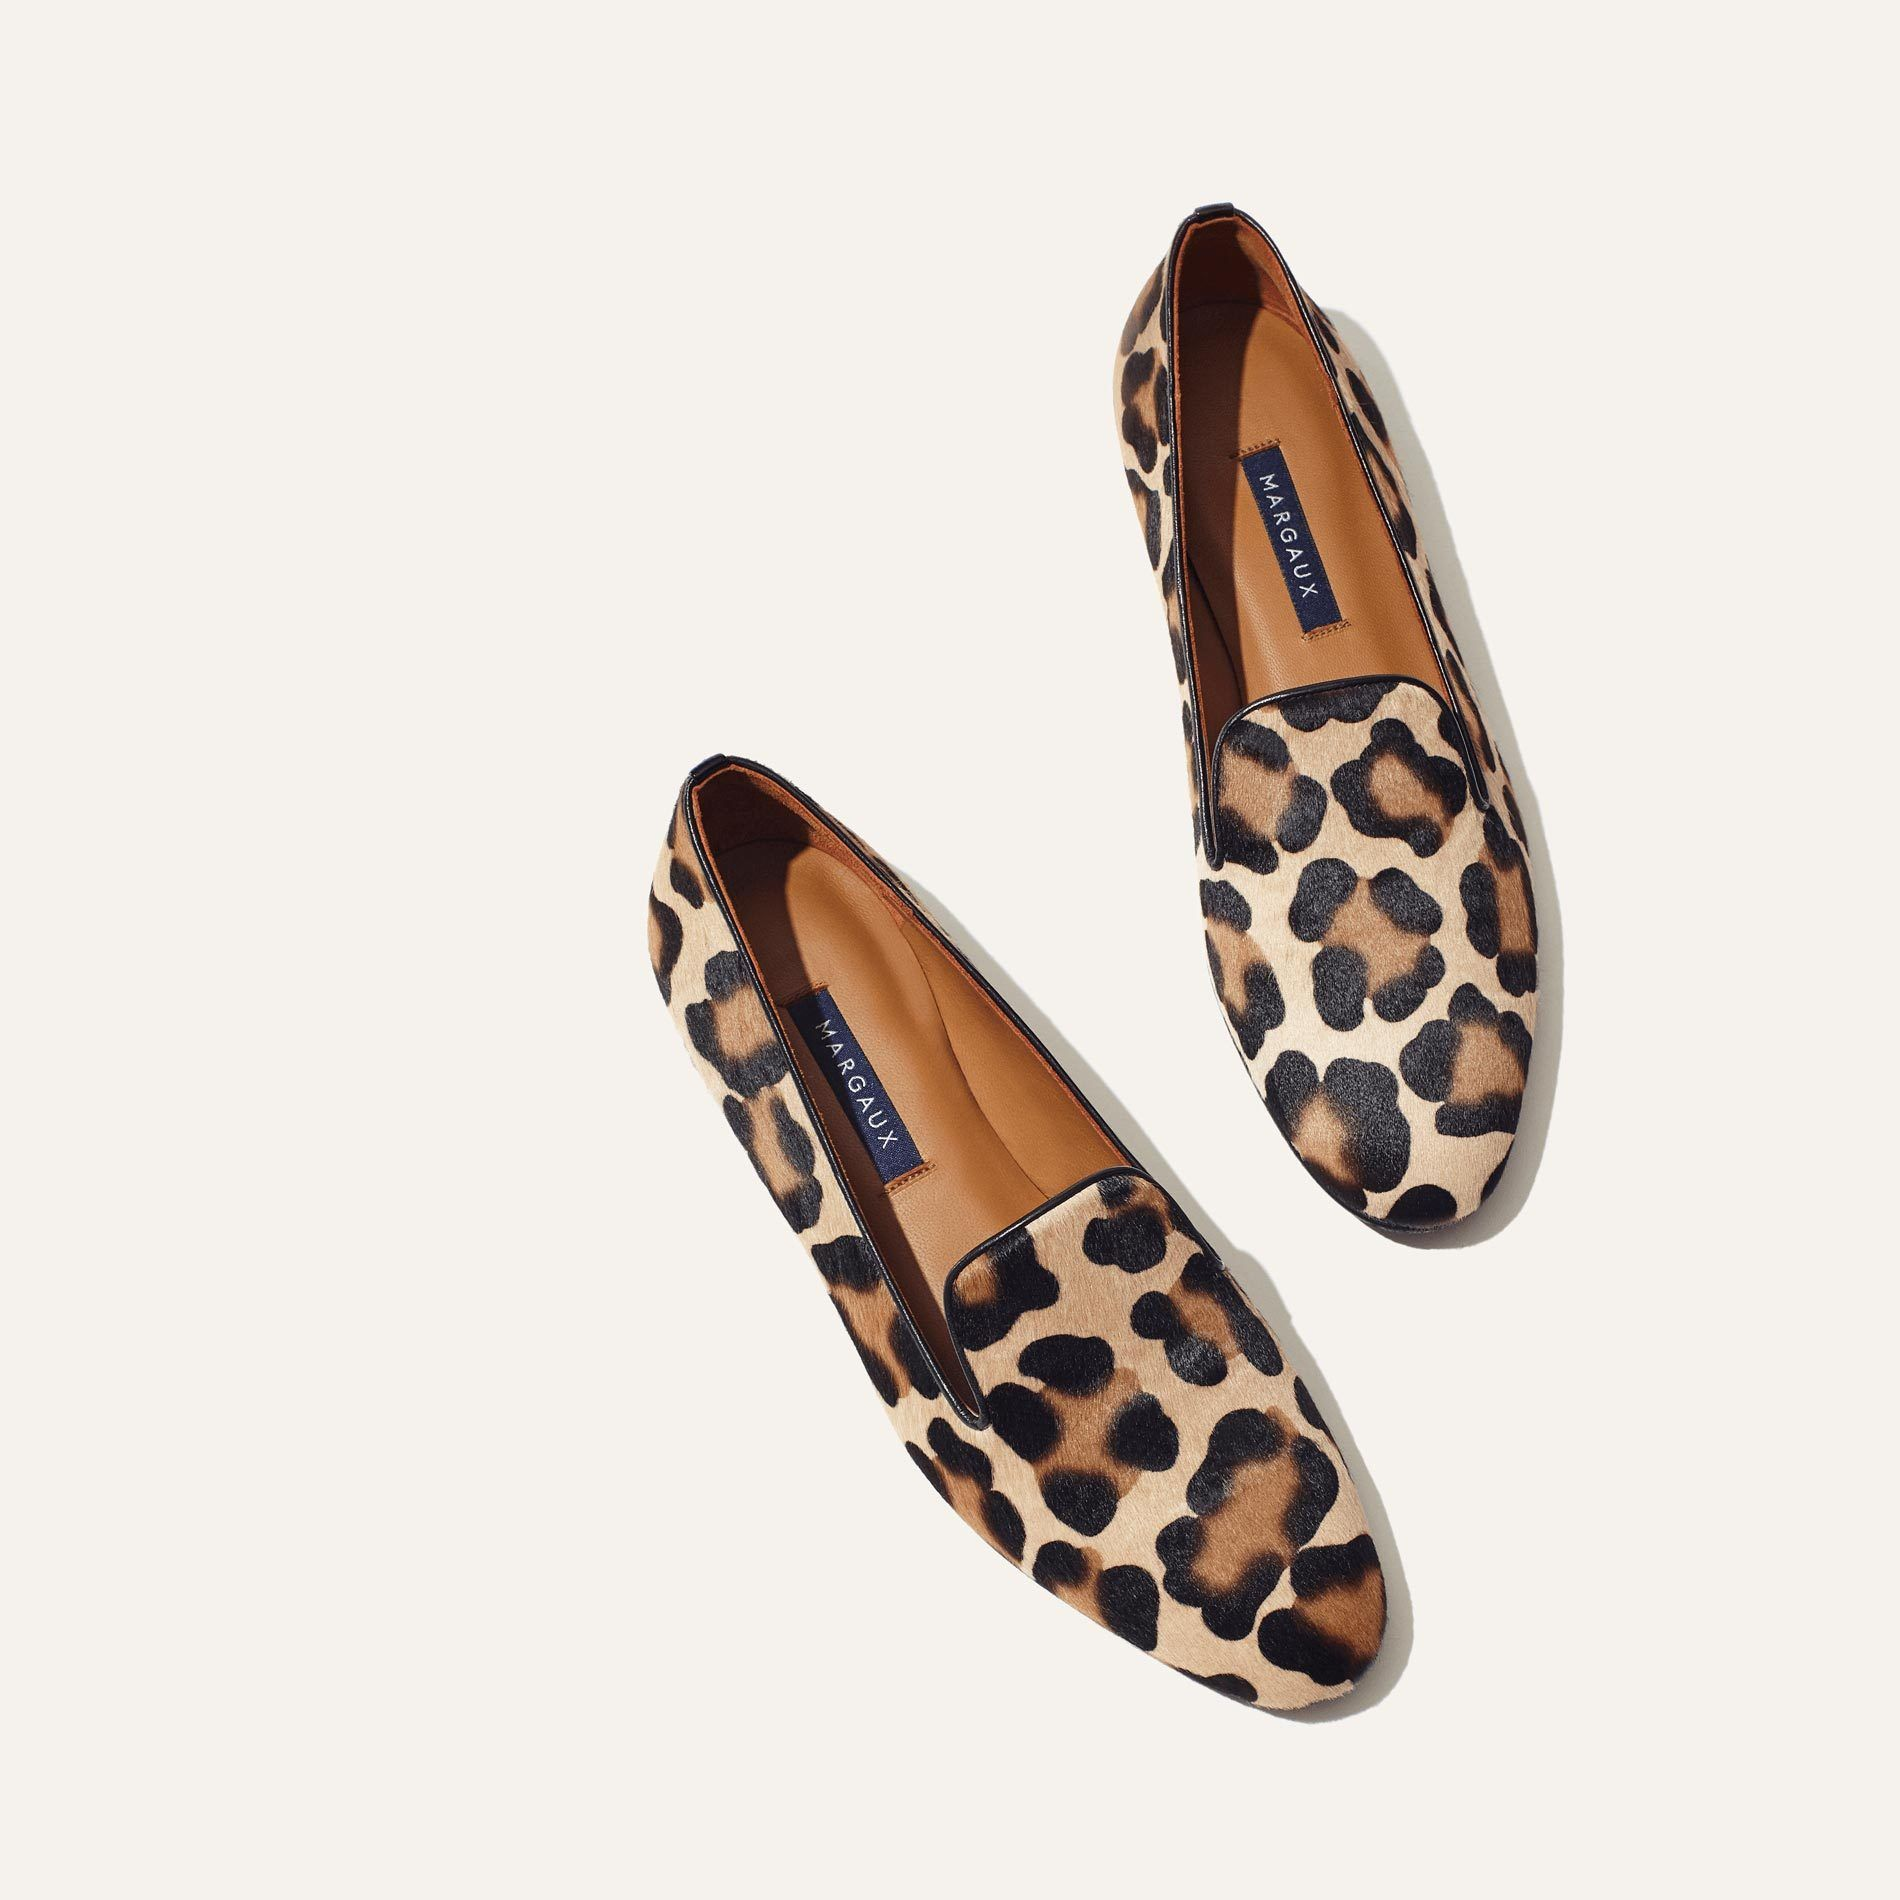 Most Comfortable Stylish Loafers